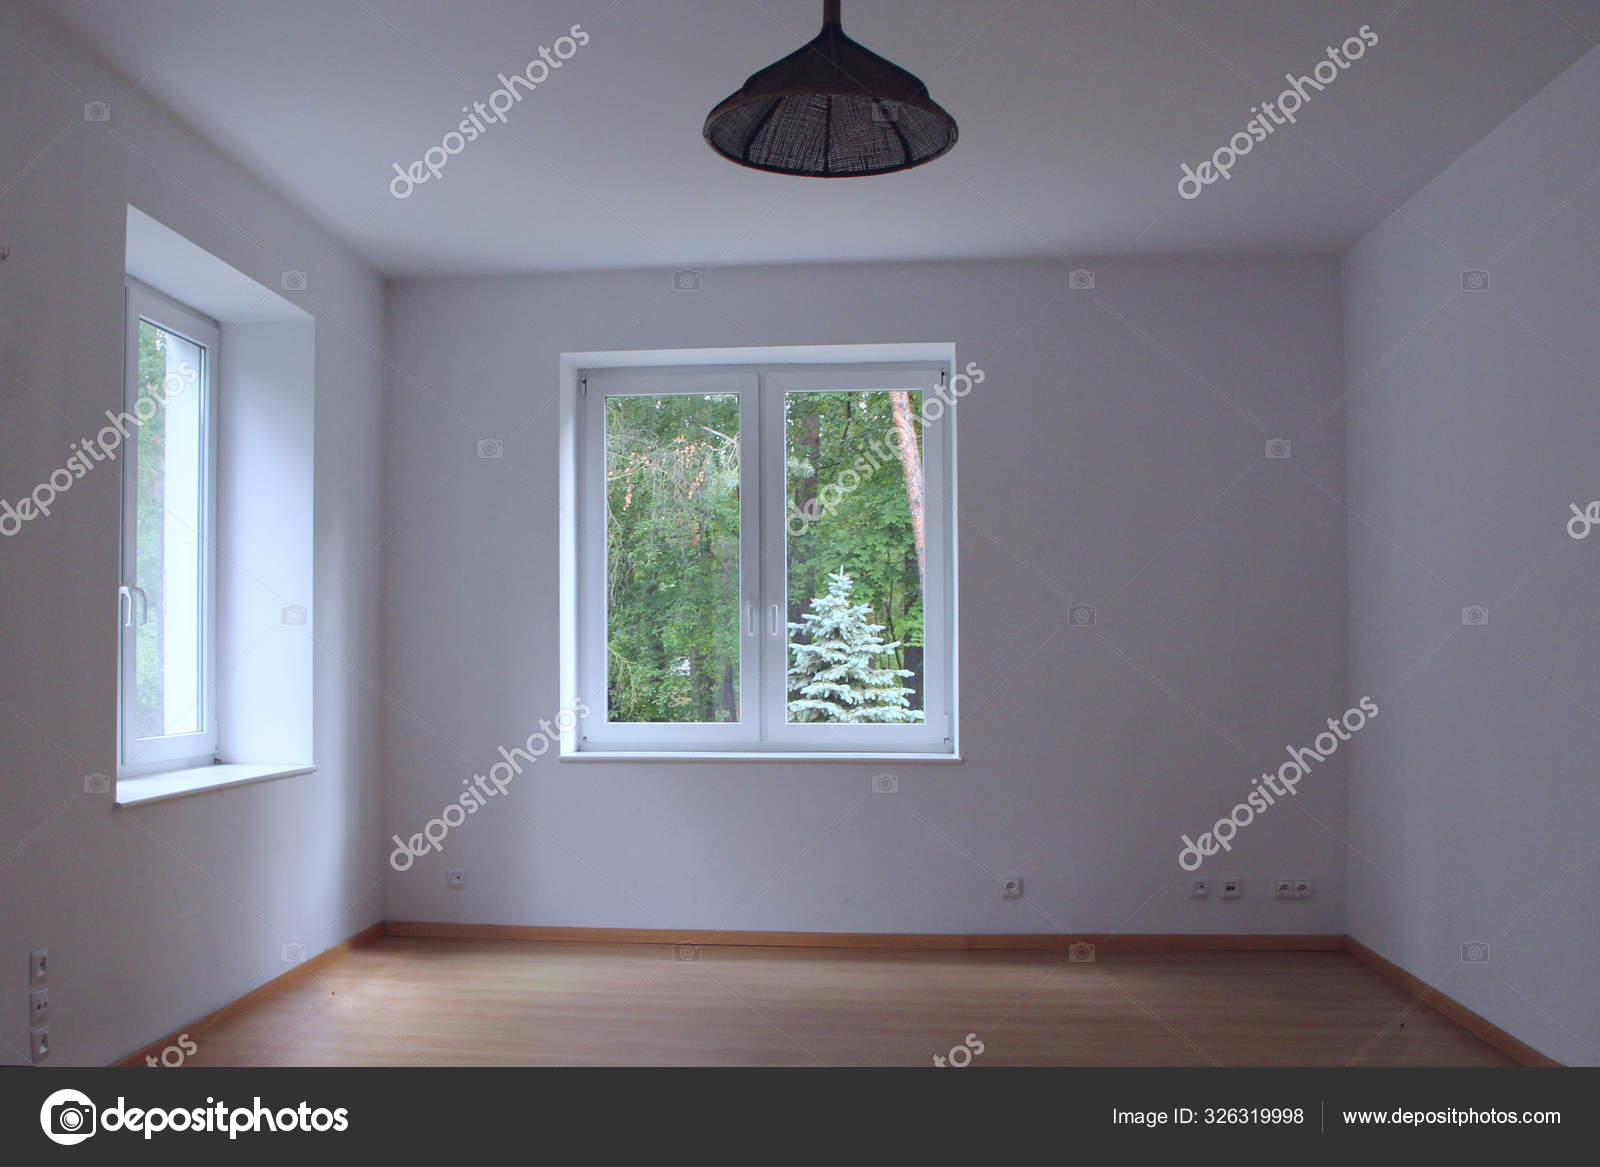 Empty clear room with window overlooking forest